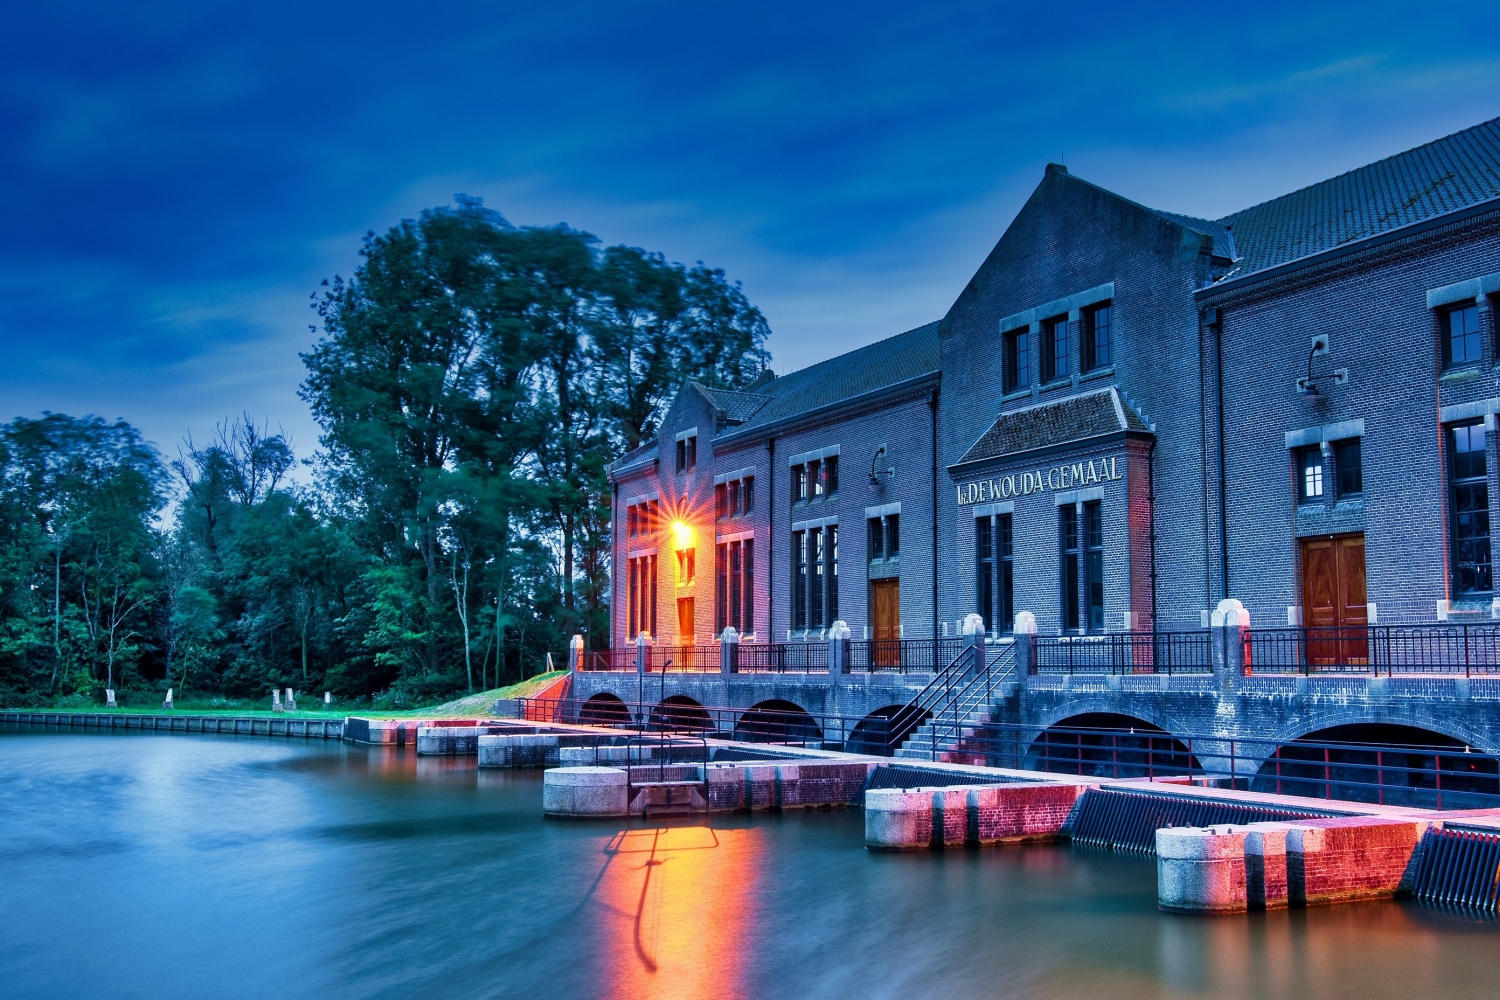 Longexposure of Woudagemaal in Lemmer